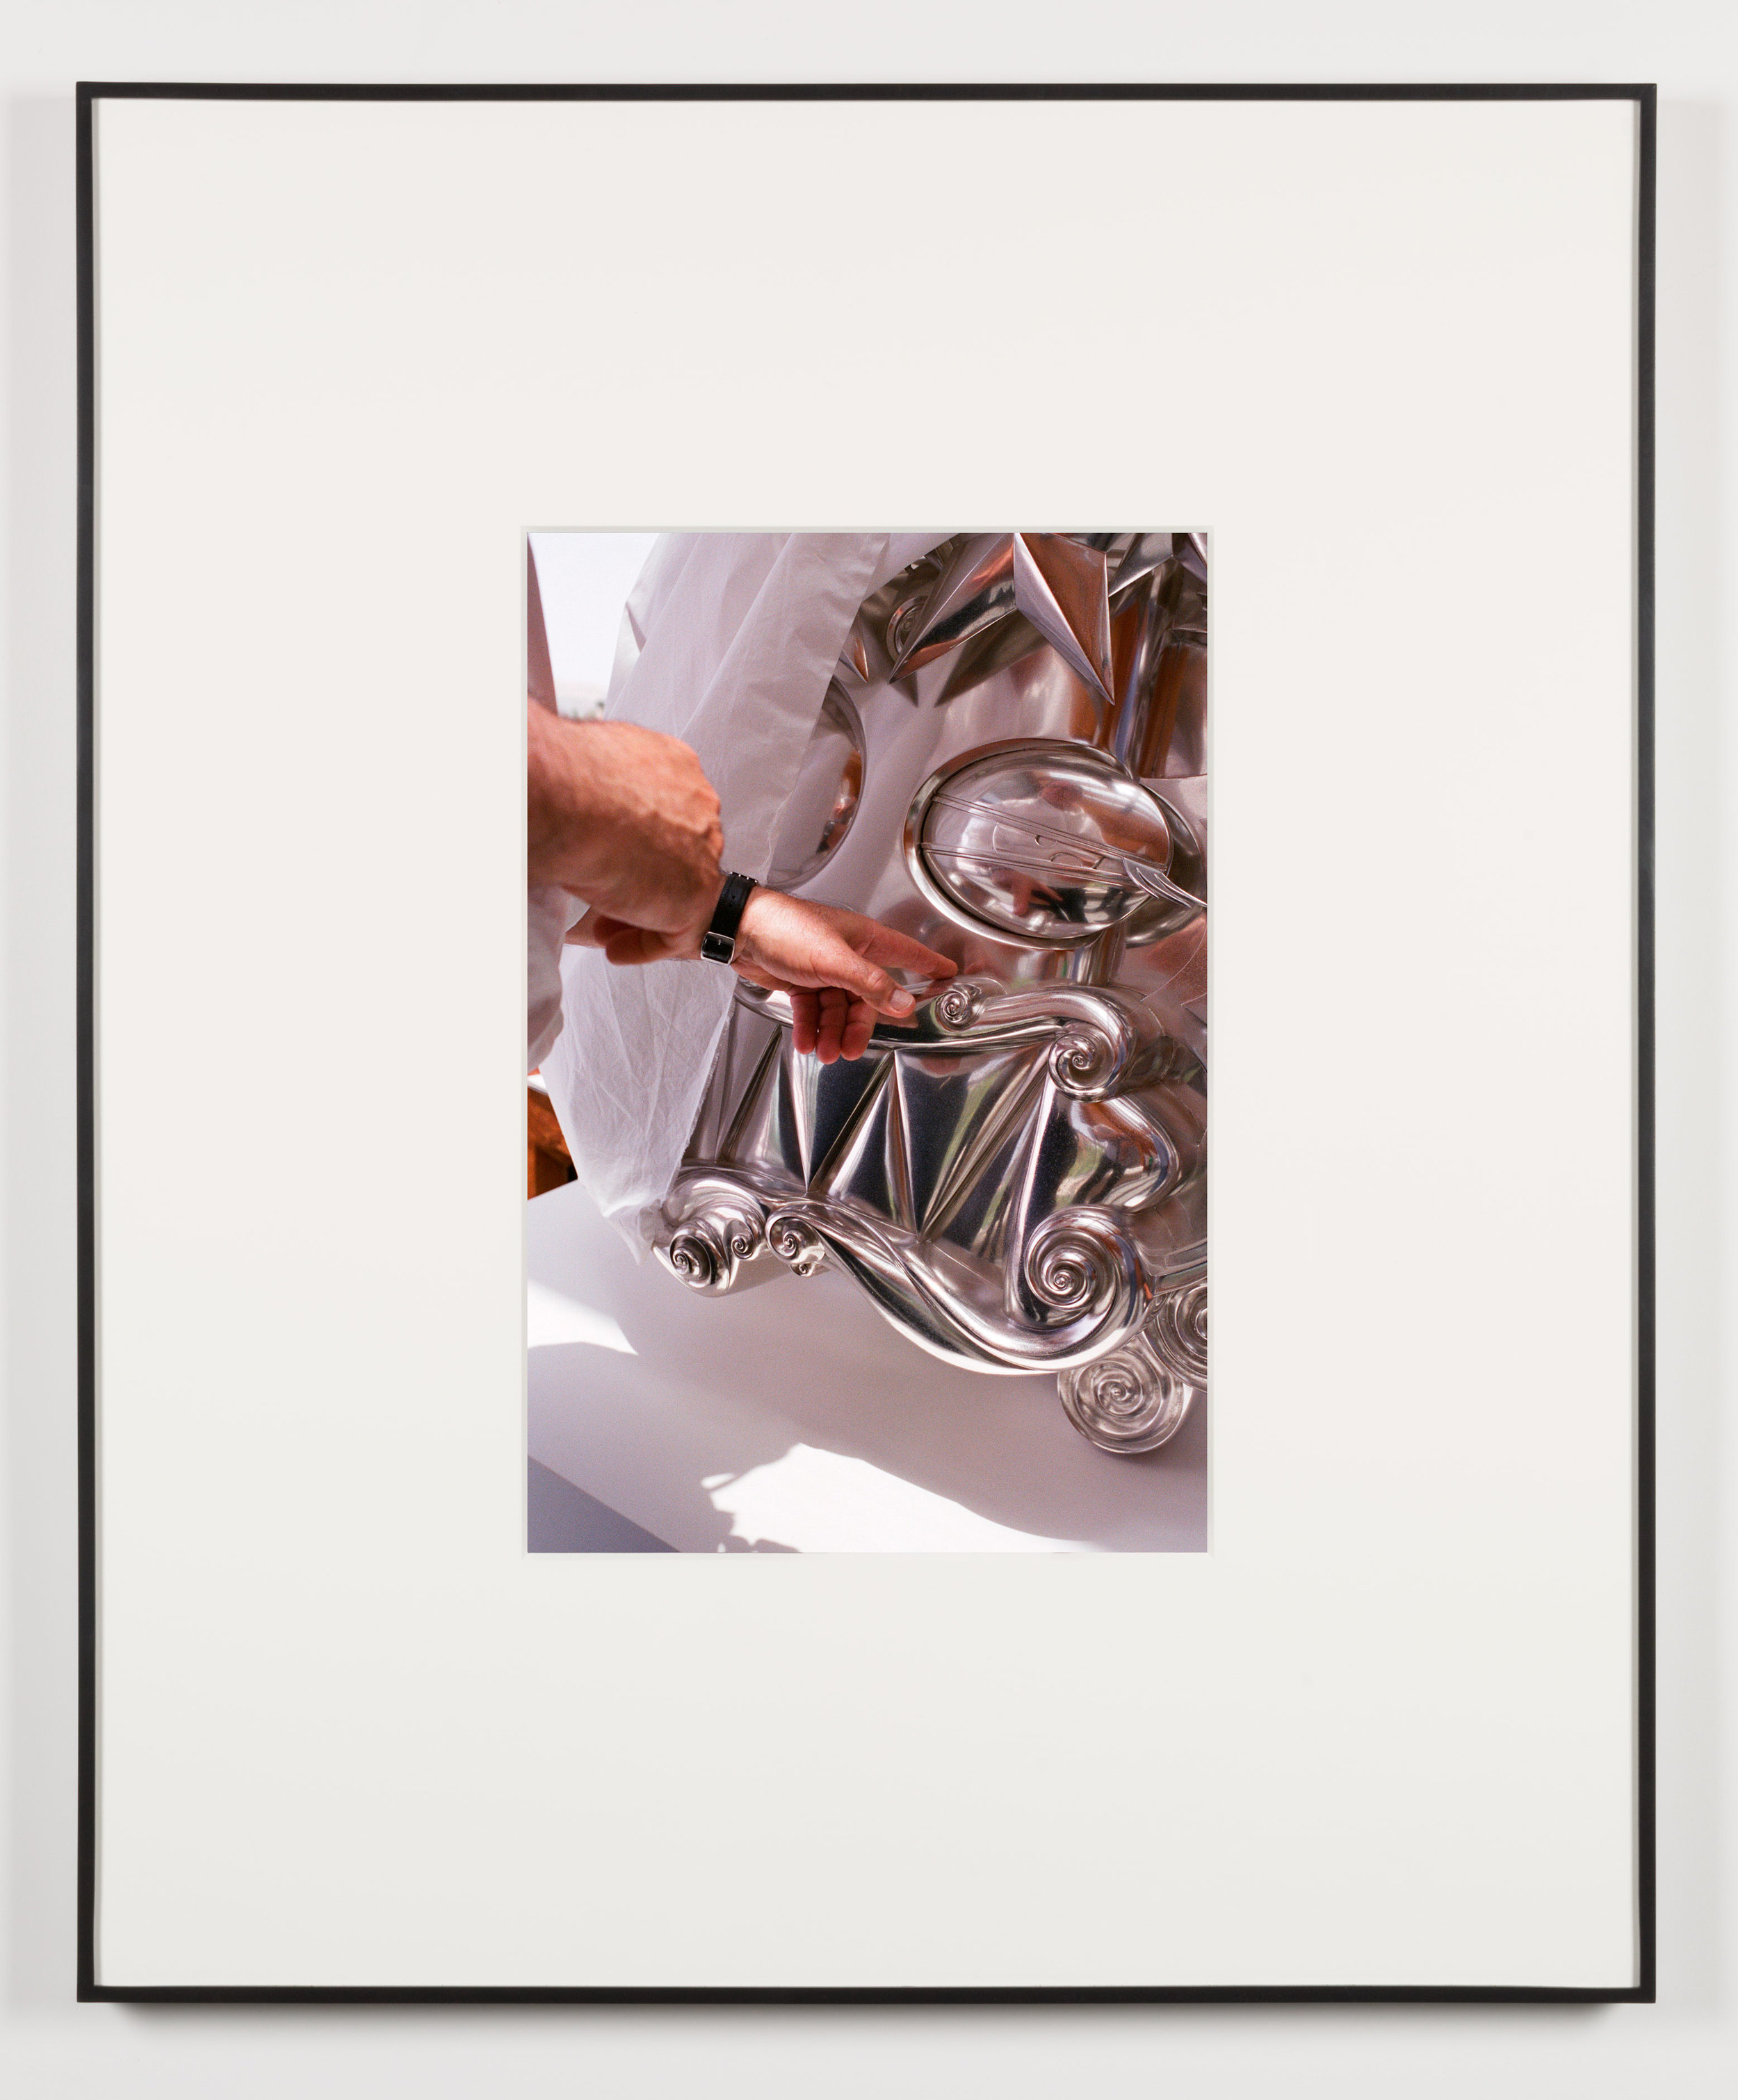 Alphabet der Leidenschaft (Beirut, Lebanon, June 1, 2013)    2014   Chromogenic print  20 x 13 1/2 inches   Art Handling, 2011–